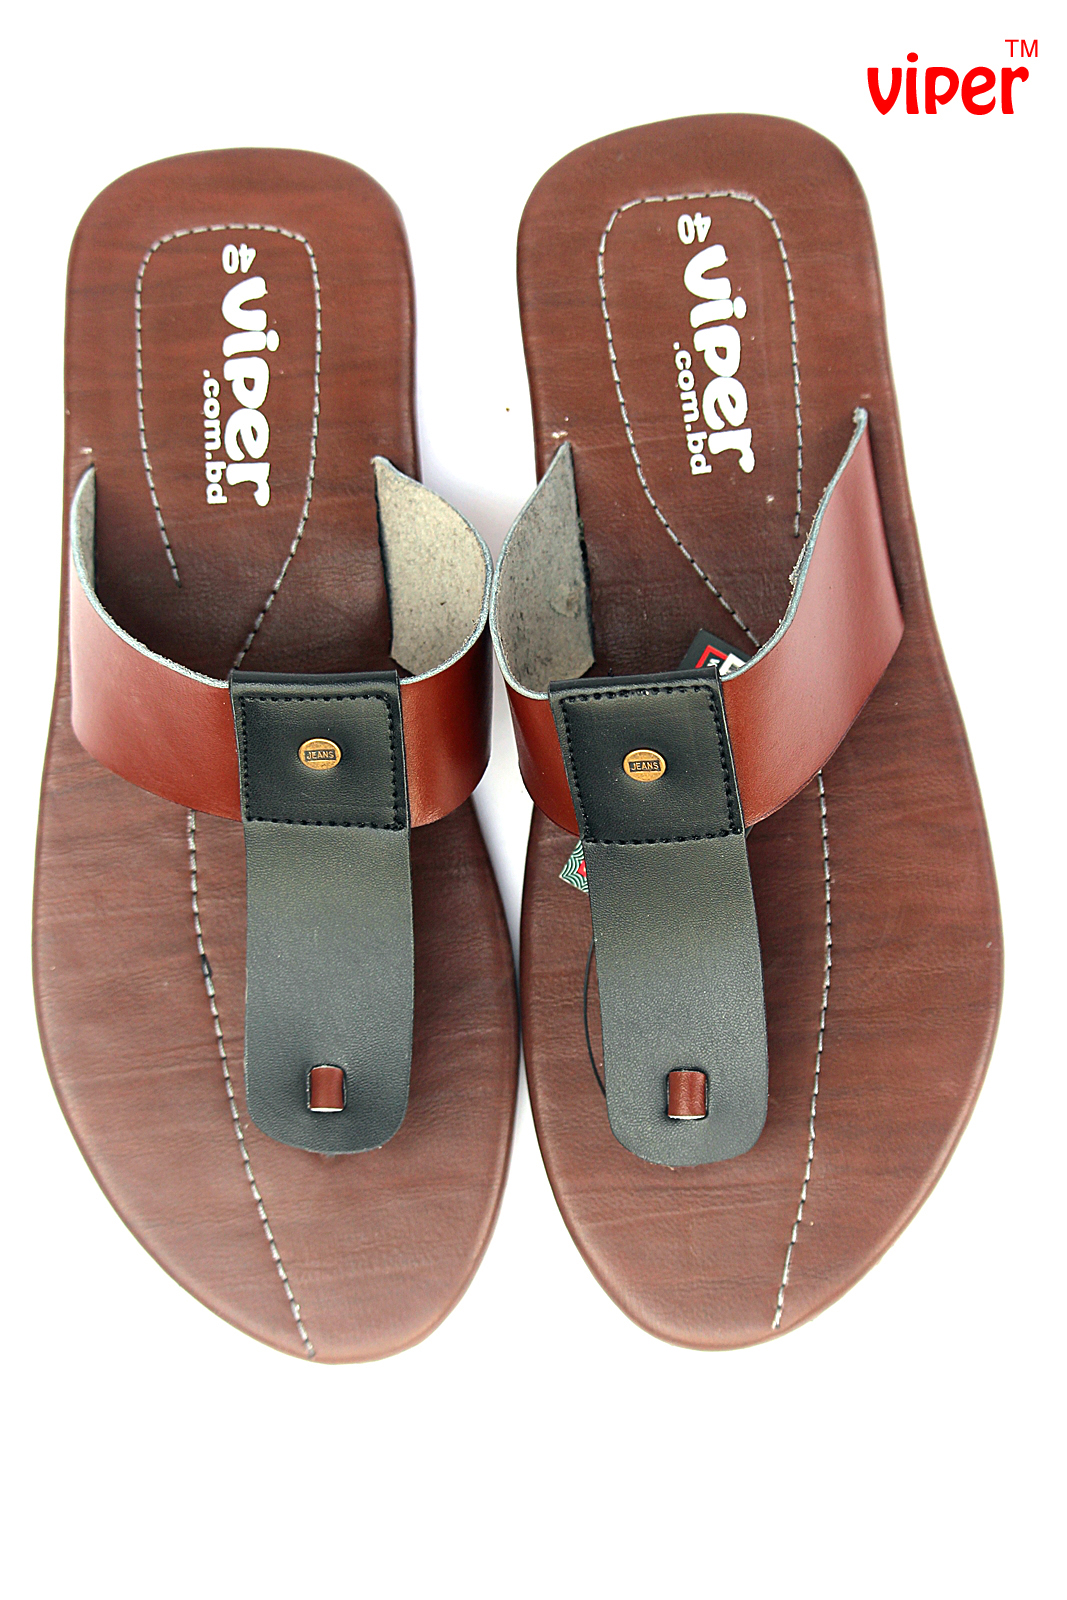 Smart Gents Sandal (Viper) - Product- GC 226